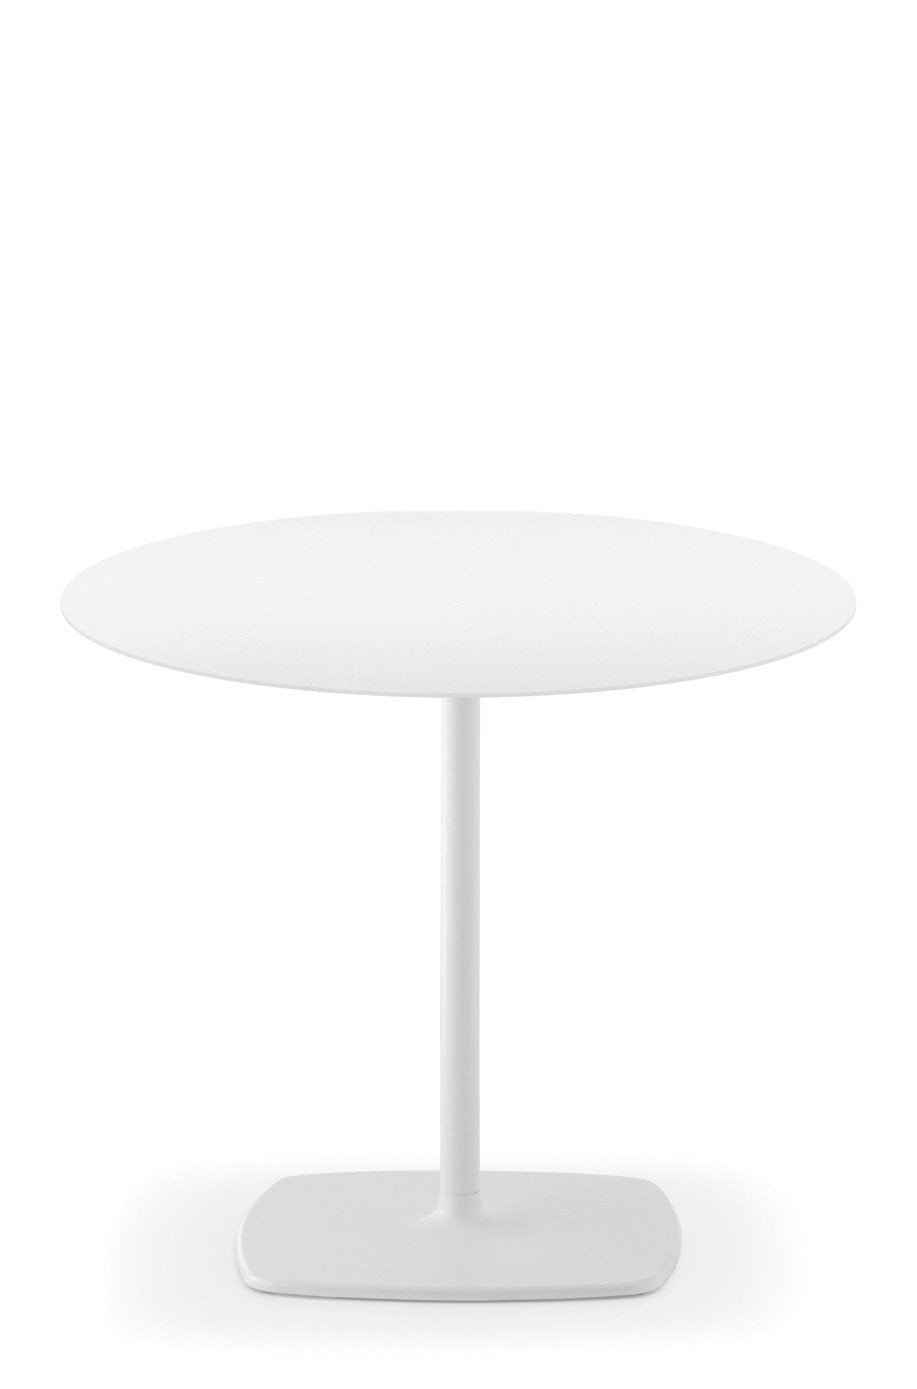 Stylus 5410 Dining Base-Pedrali-Contract Furniture Store